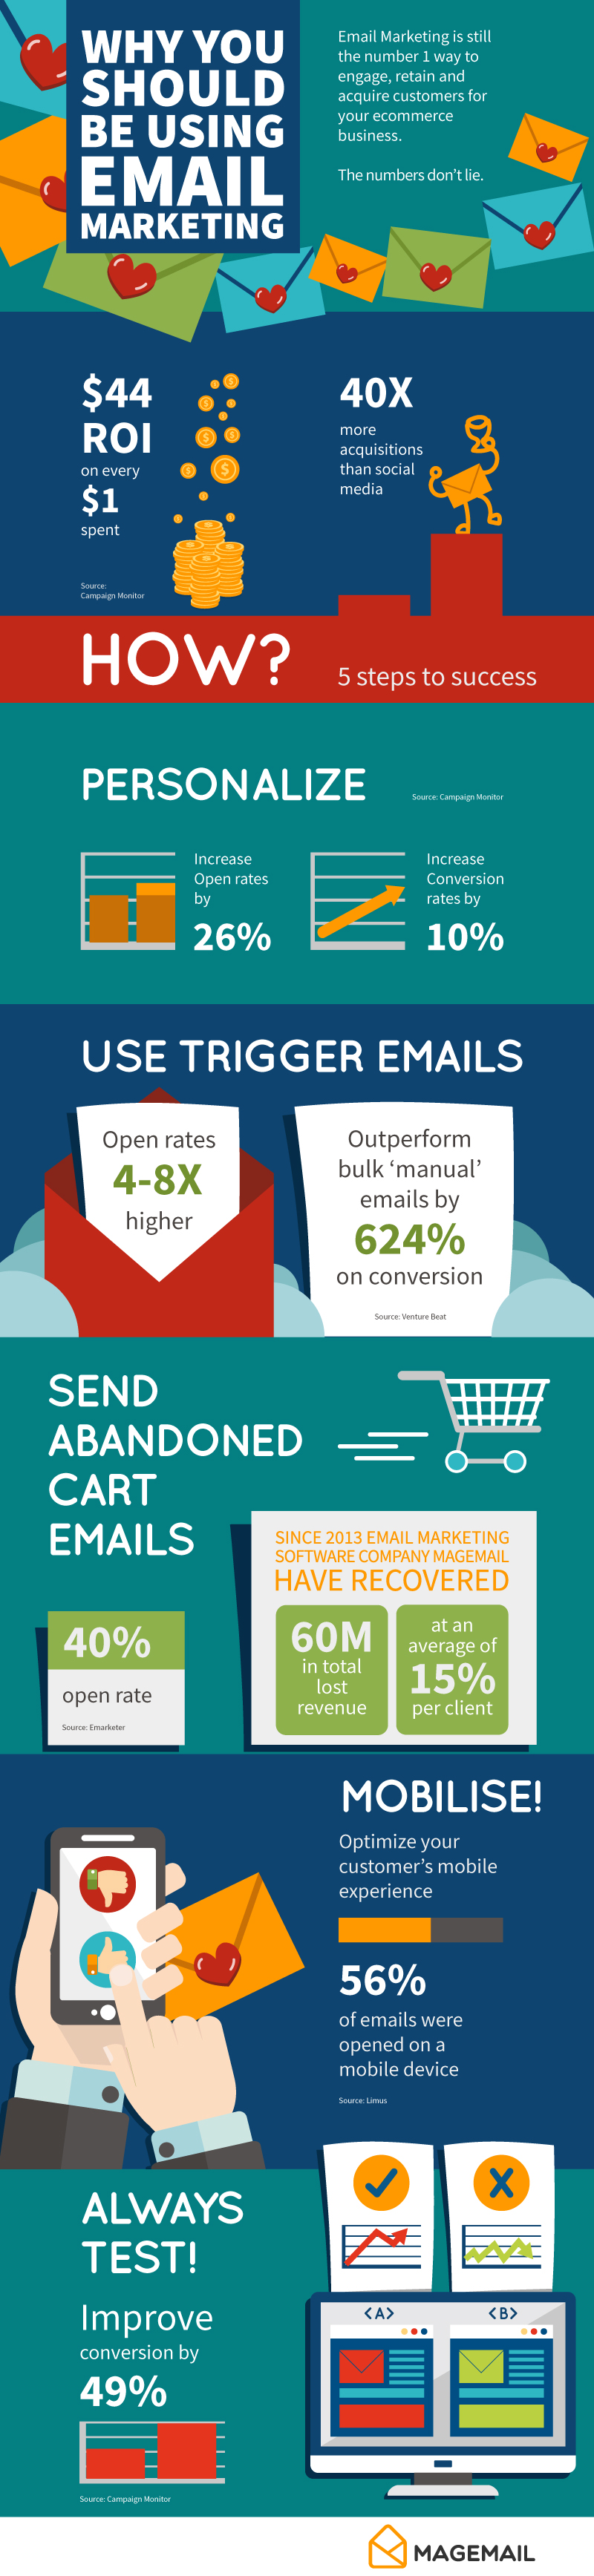 infographic of why you should be using email marketing